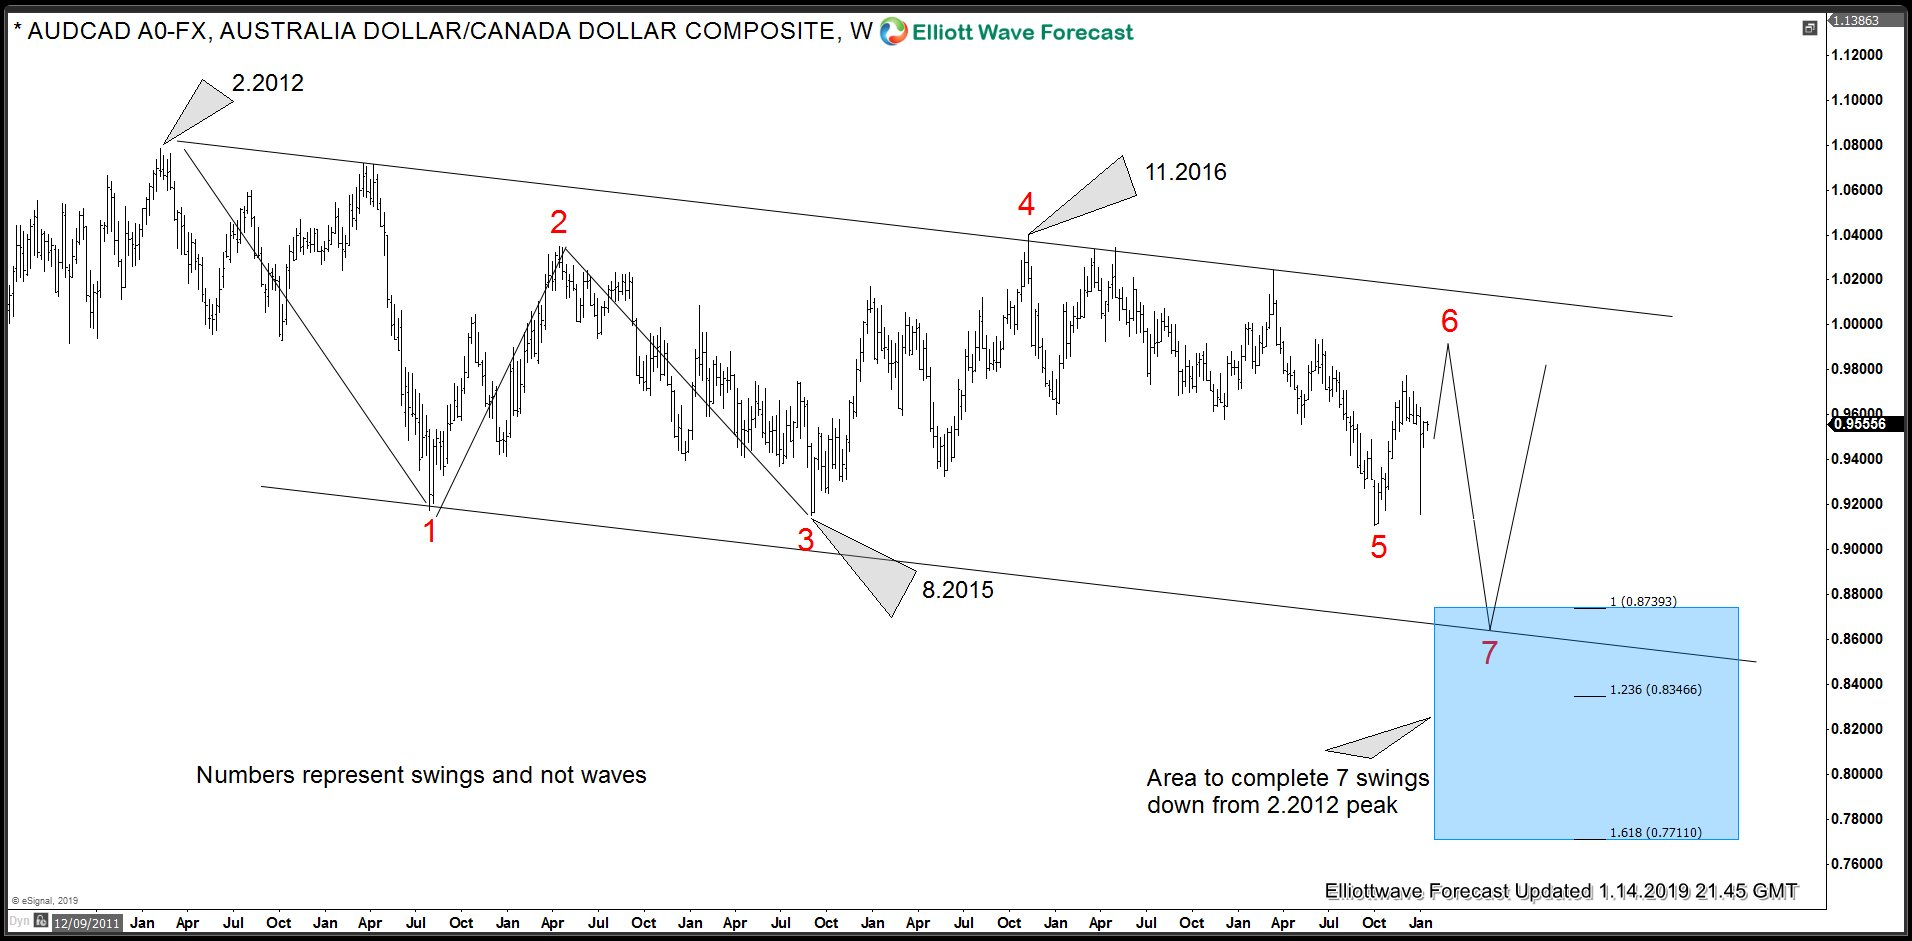 AUDCAD Elliott Wave Swing sequence down from 2012 peak